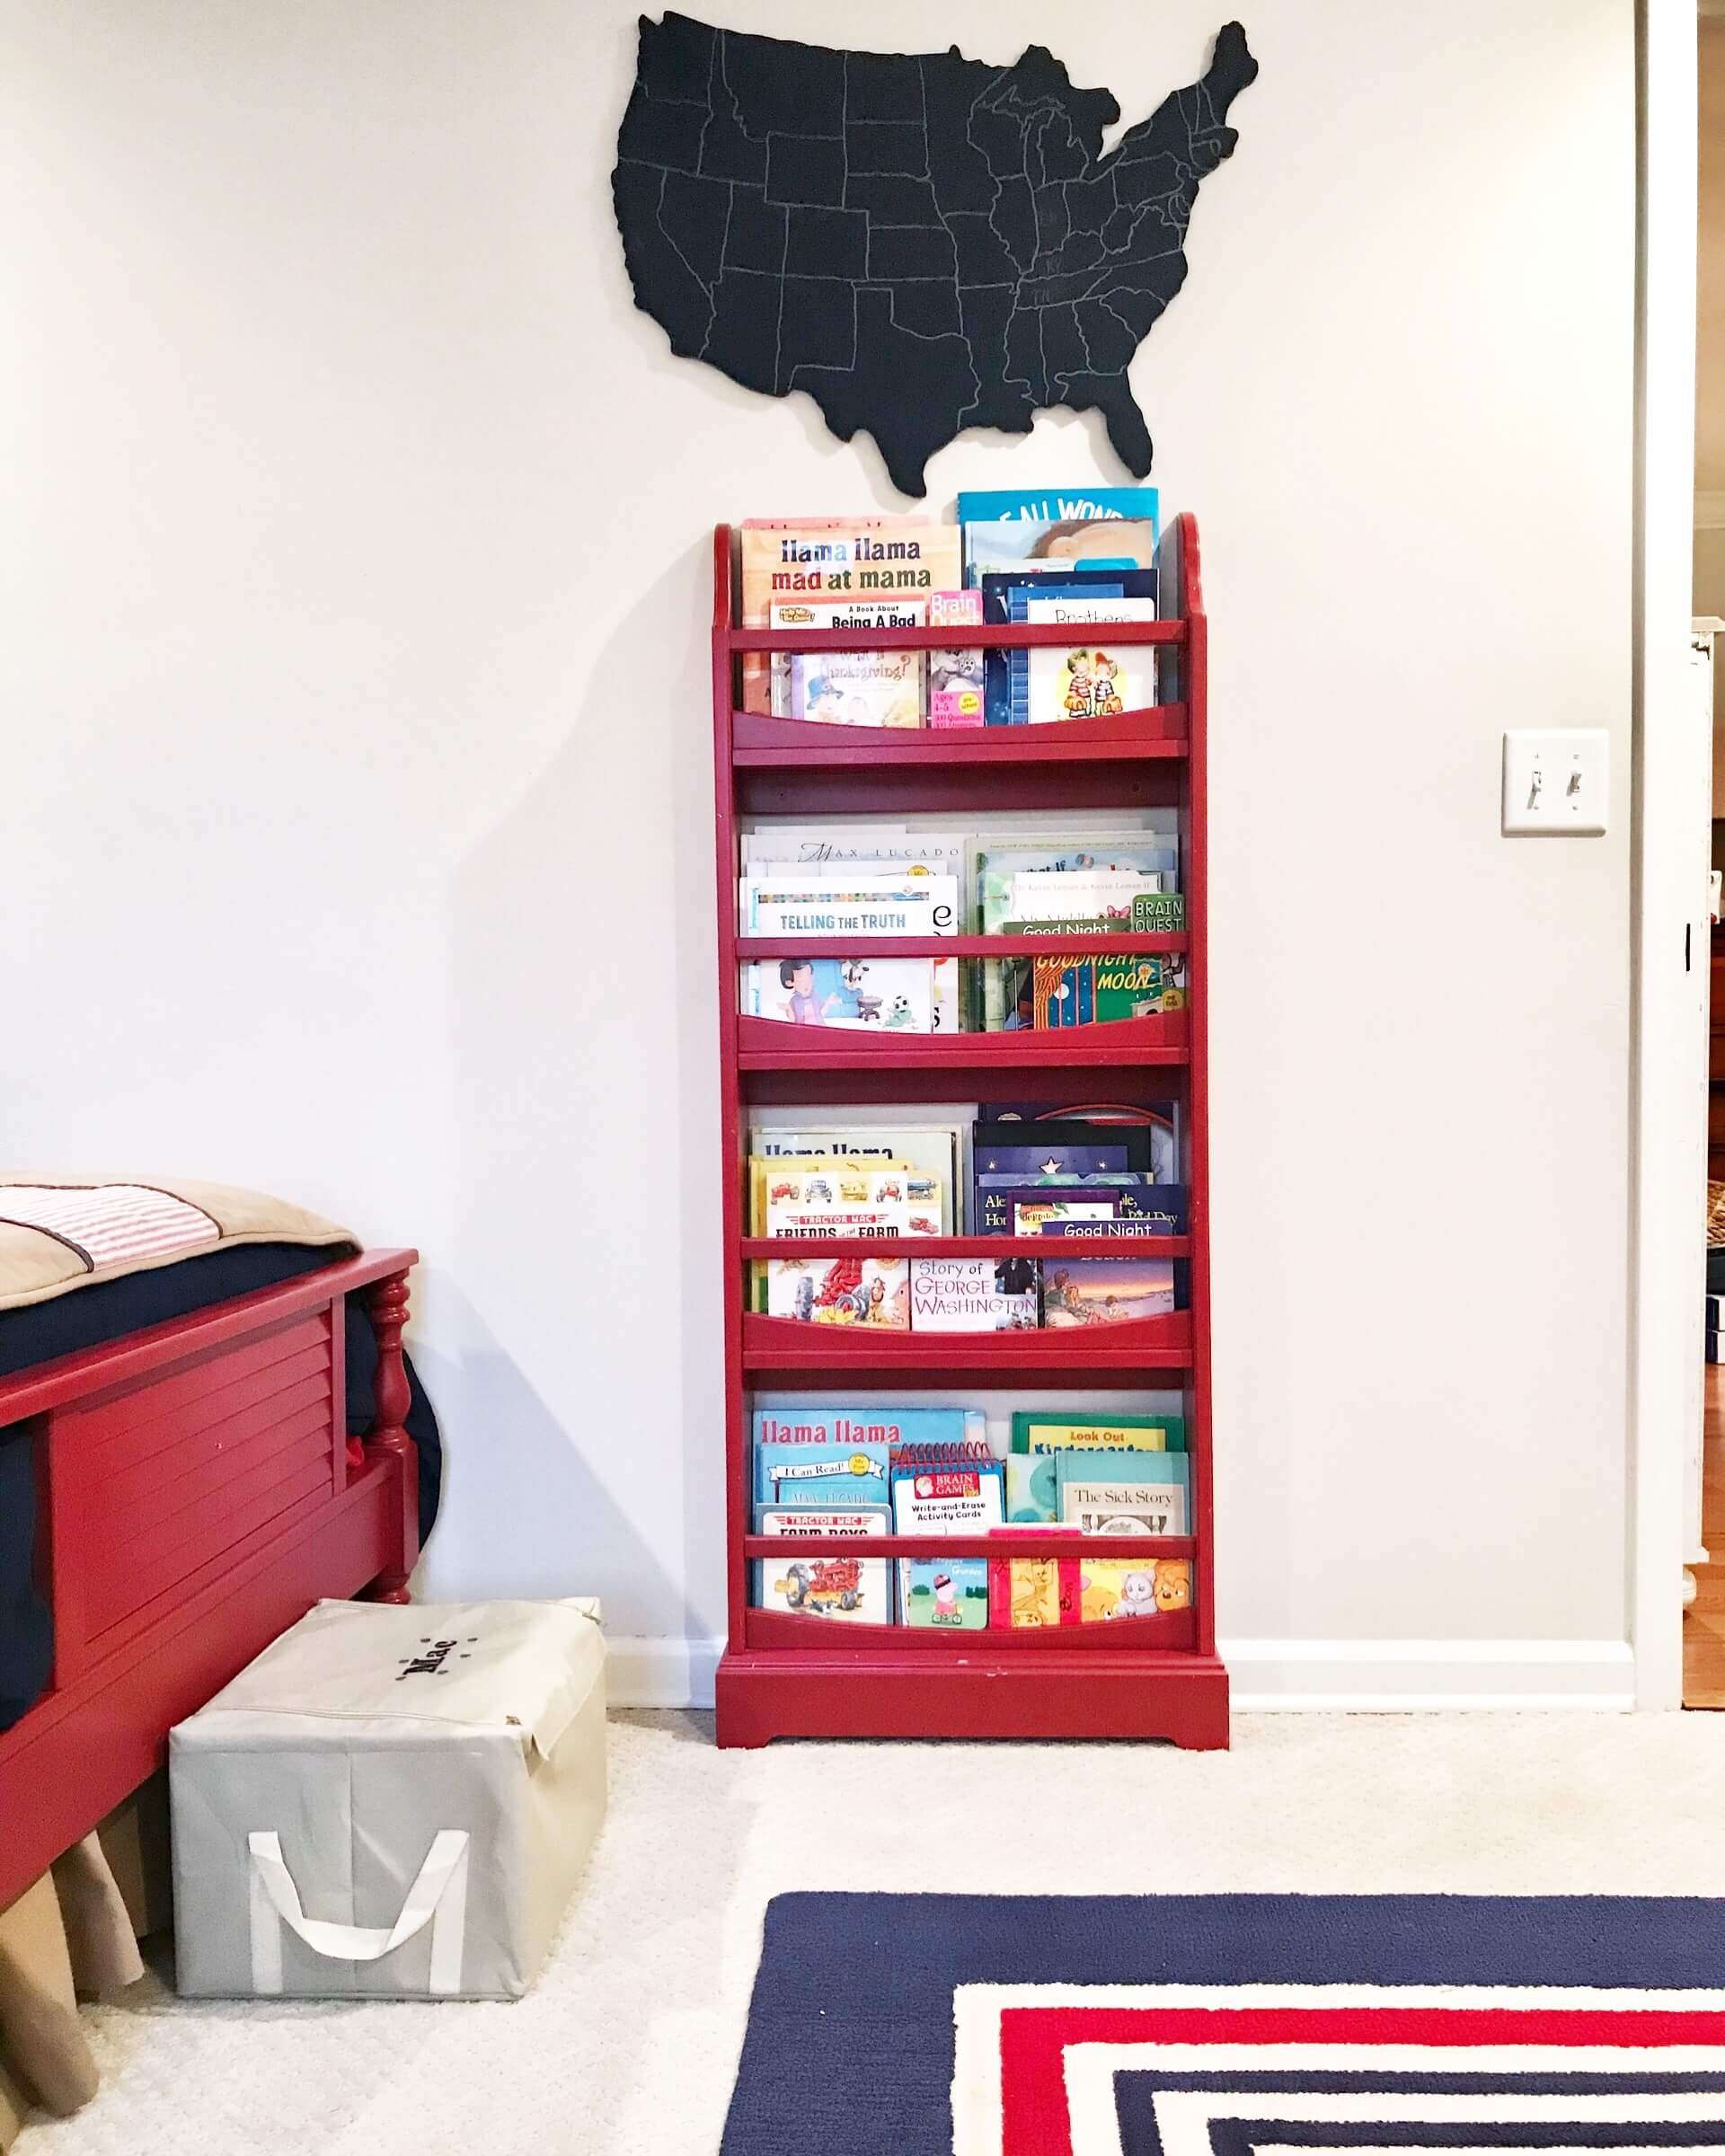 Categorize books by sets and decorate with fun accessories for and organized and styled bookshelf.